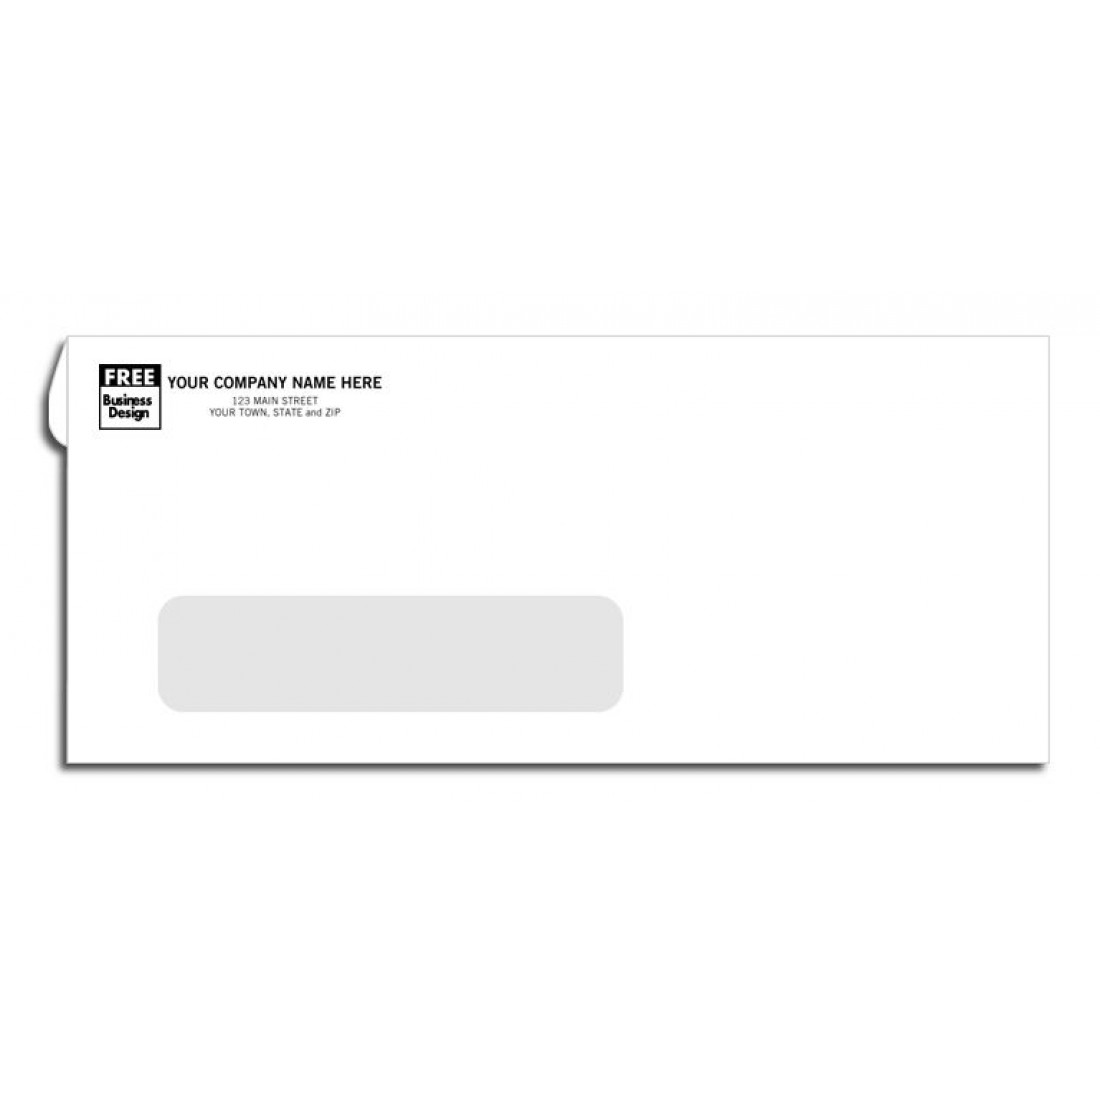 No. 10 Business Envelopes, Single Window, Confidential Security Tint